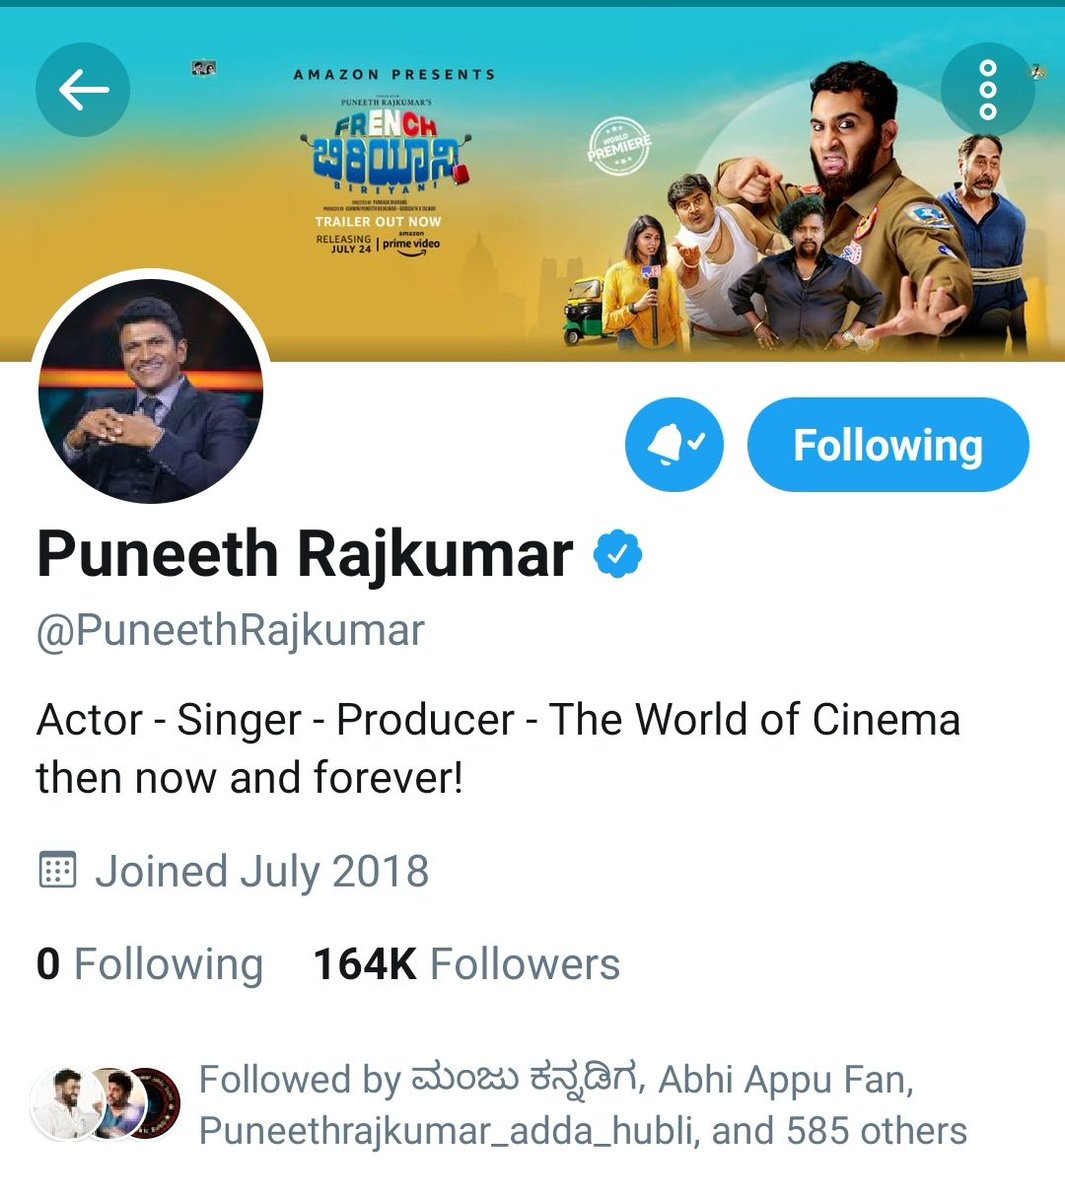 164k followers for #PowerStar @PuneethRajkumar 😎on #Twitter. Di follow if you have not followed right now... 👍🏼 Share his profile link to all!  #Yuvarathnaa #Appu #SpreadPowerism